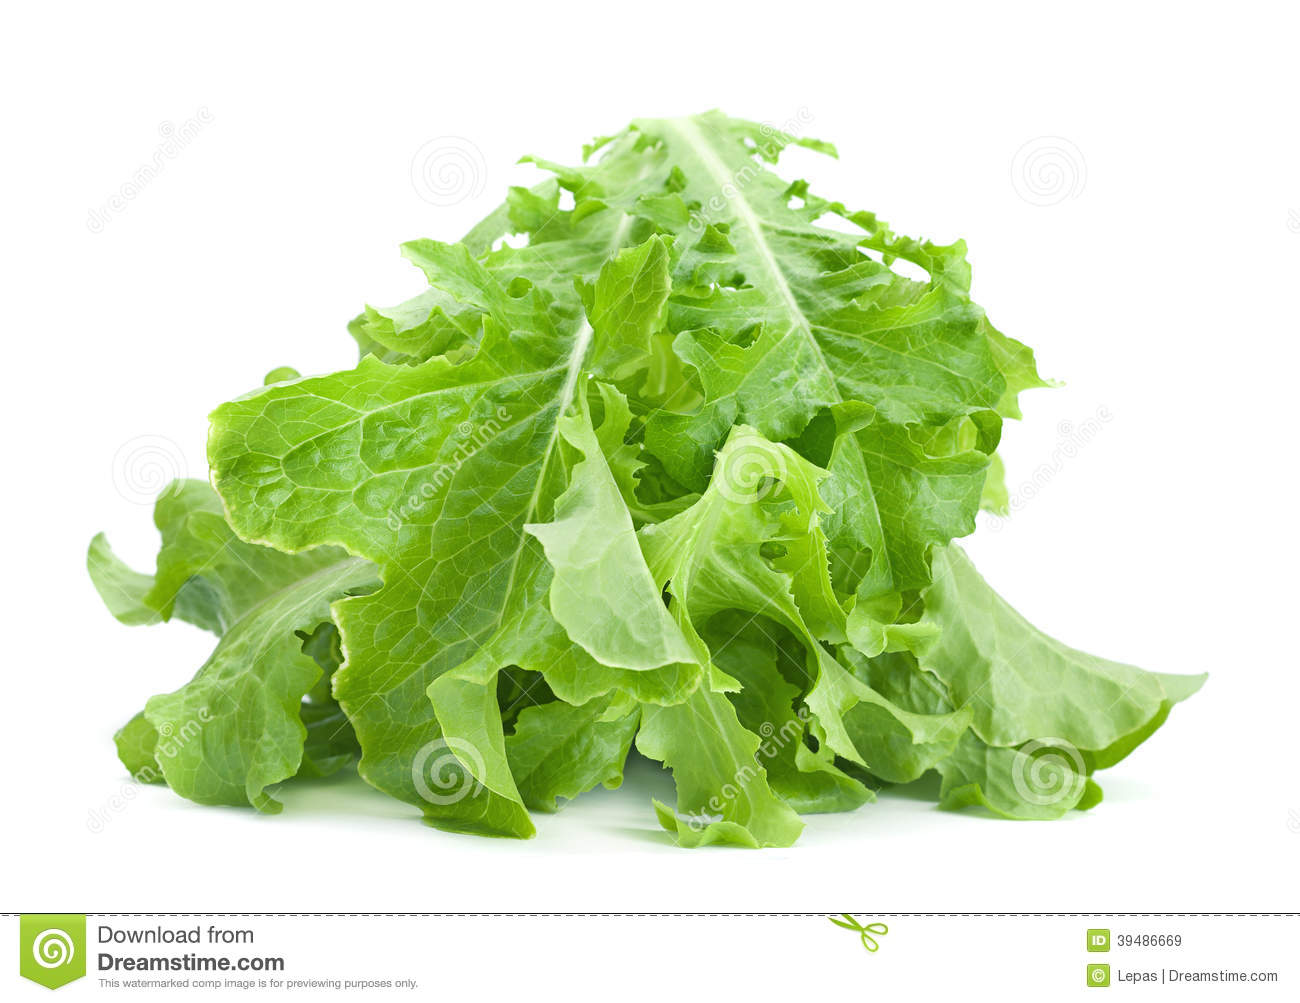 how to cut leaf lettuce for salad